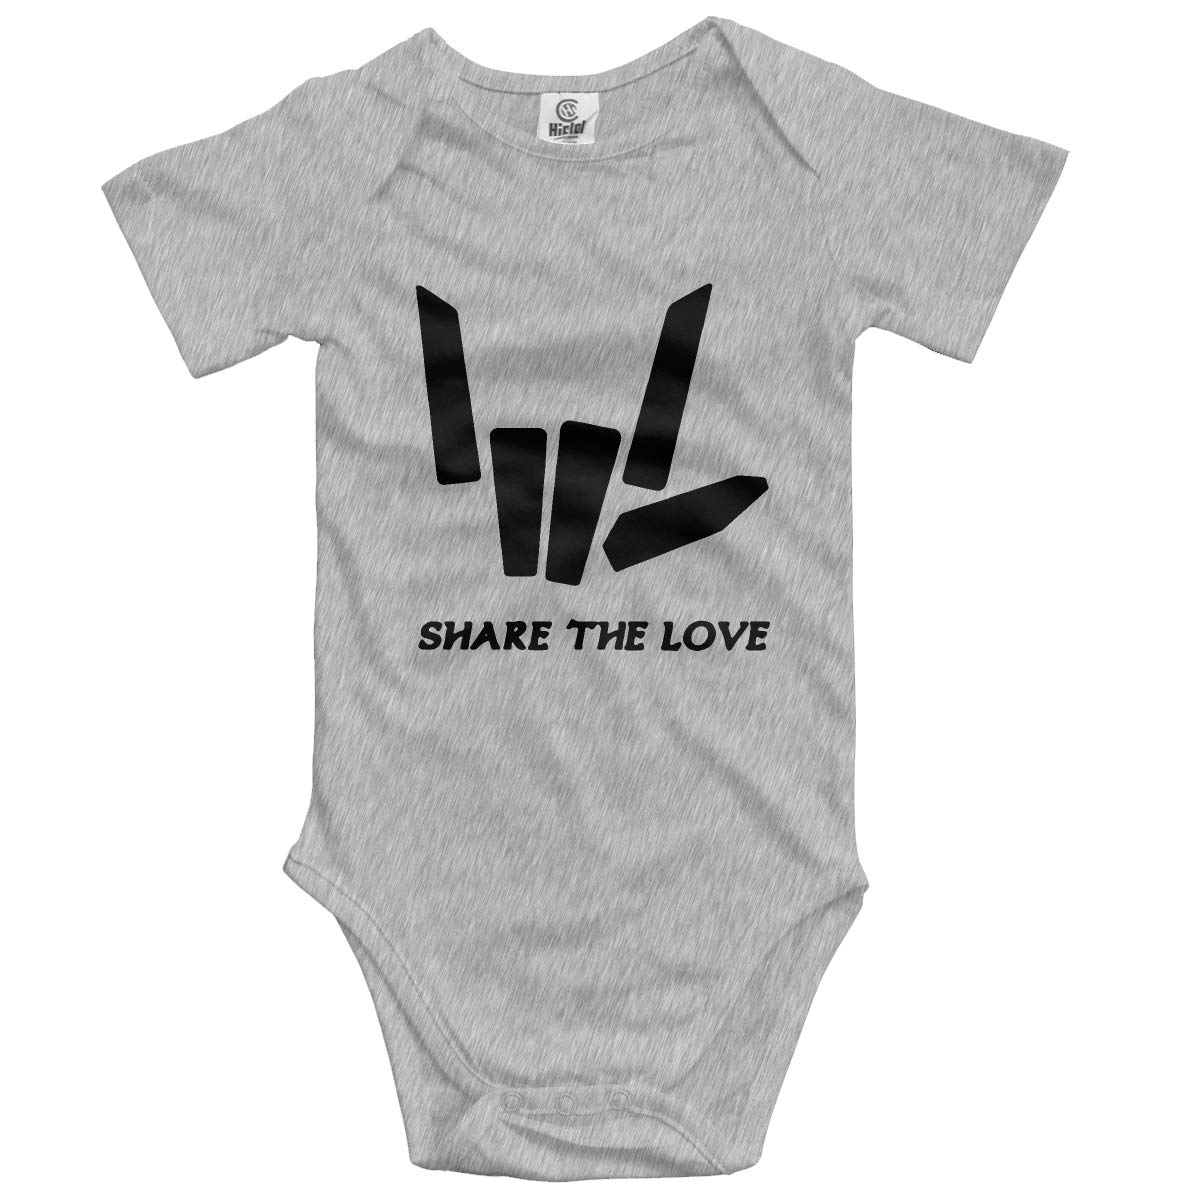 Share The Love Baby Romper 0-18 Months Newborn Baby Girls Boys Layette Rompers Pink